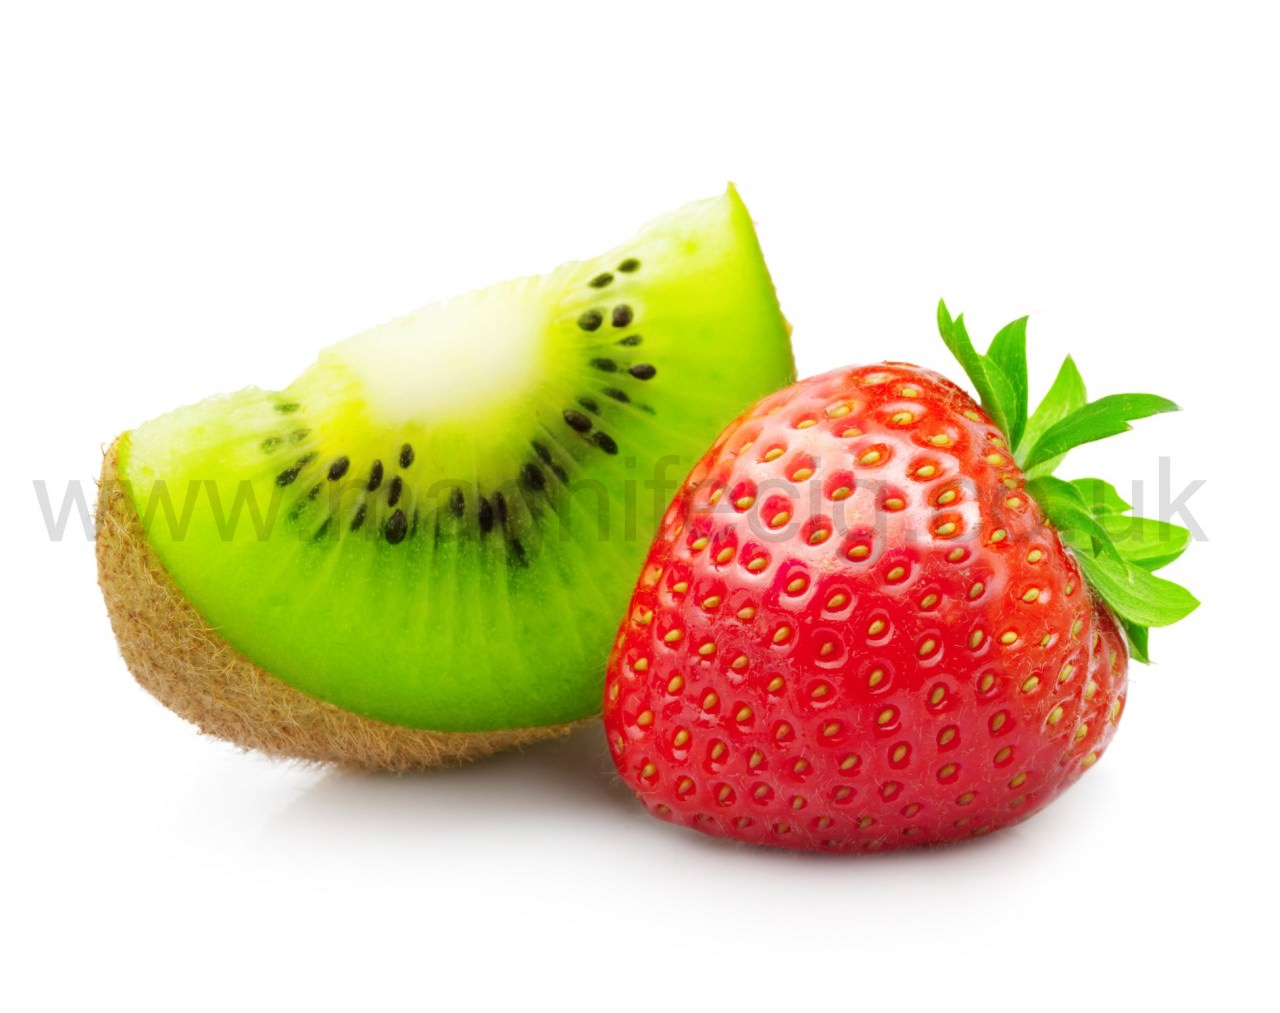 Magnifecig Strawberry Kiwi E Liquid